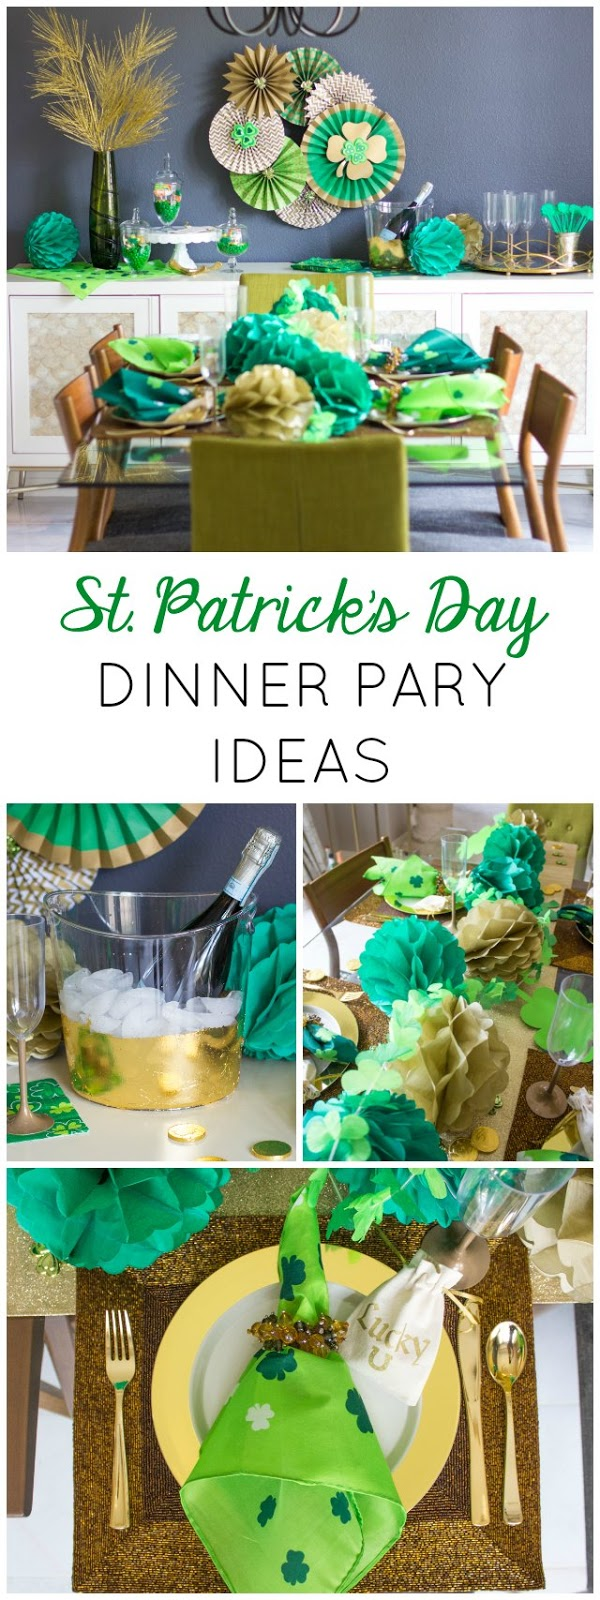 February Dinner Party Ideas Part - 16: How To Create An Elegant, Yet Simple St. Patricku0027s Day Dinner Party!